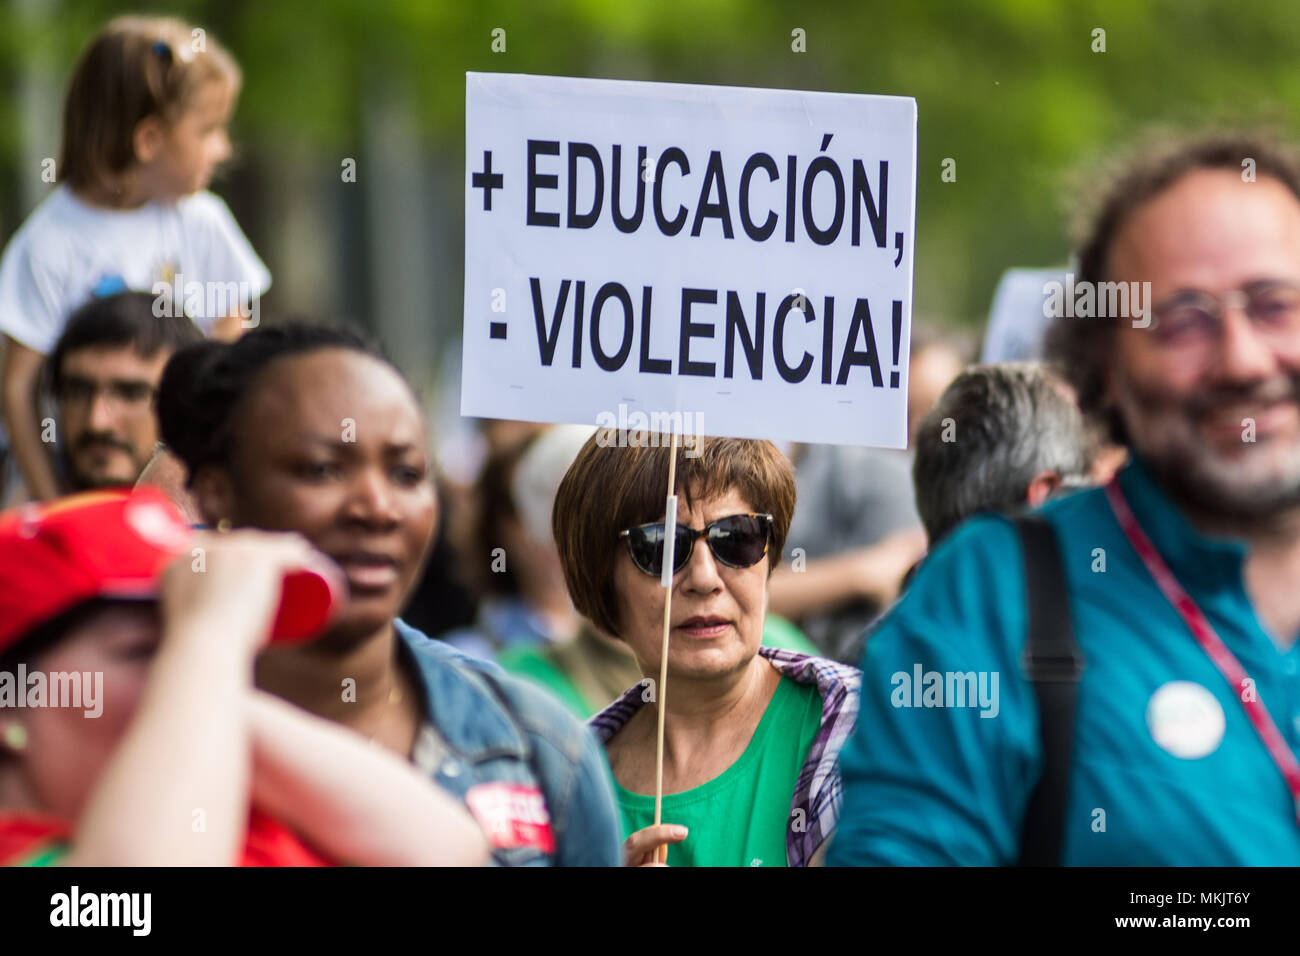 Madrid, Spain. 08th May, 2018. A woman protesting with a placard that reads 'More education, less violence!' during a demonstration against budget cuts in education and against education law (LOMCE), in Madrid, Spain. Credit: Marcos del Mazo/Alamy Live News - Stock Image